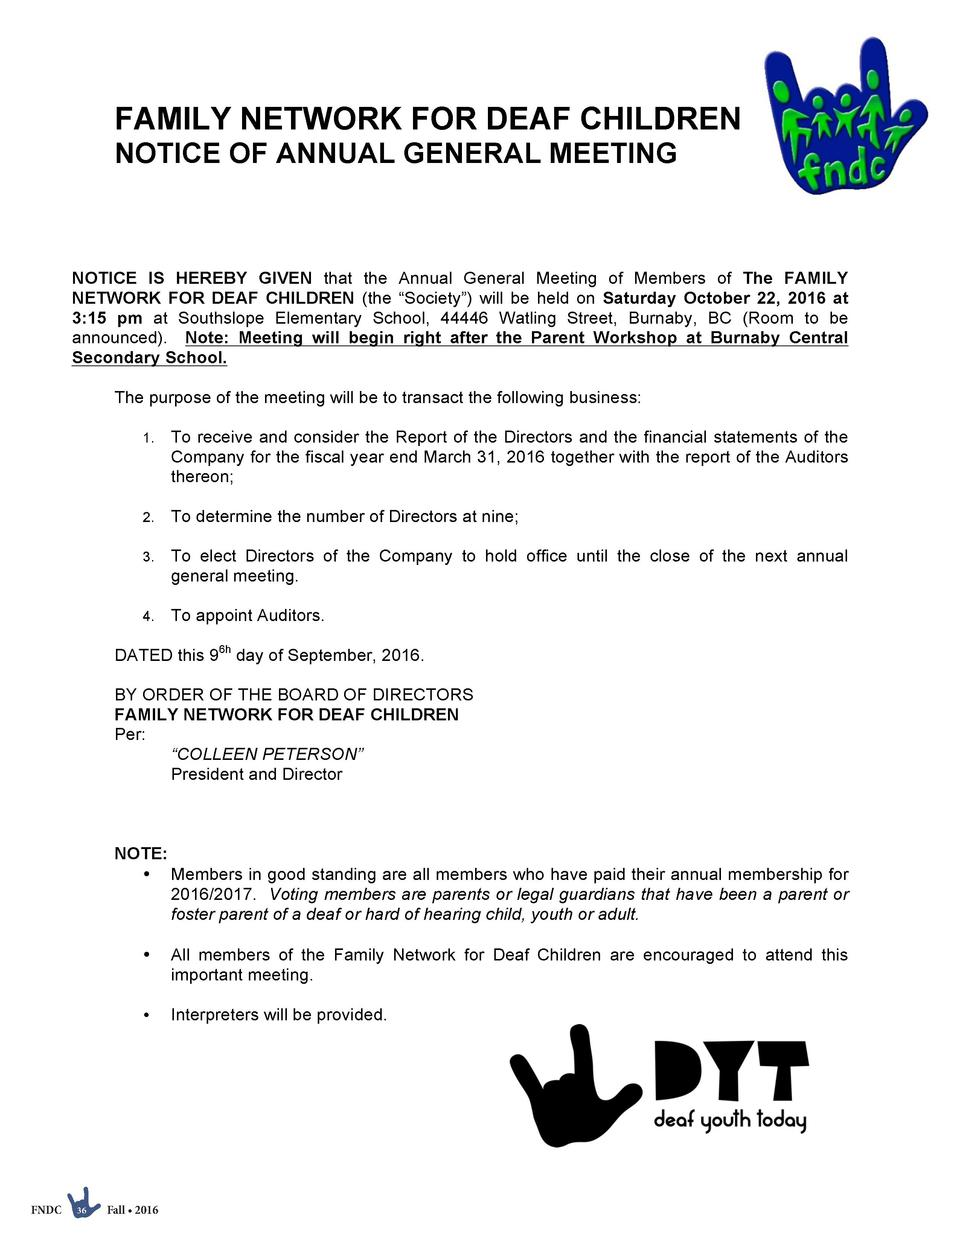 FAMILY NETWORK FOR DEAF CHILDREN NOTICE OF ANNUAL GENERAL MEETING  NOTICE IS HEREBY GIVEN that the Annual General Meeting ...